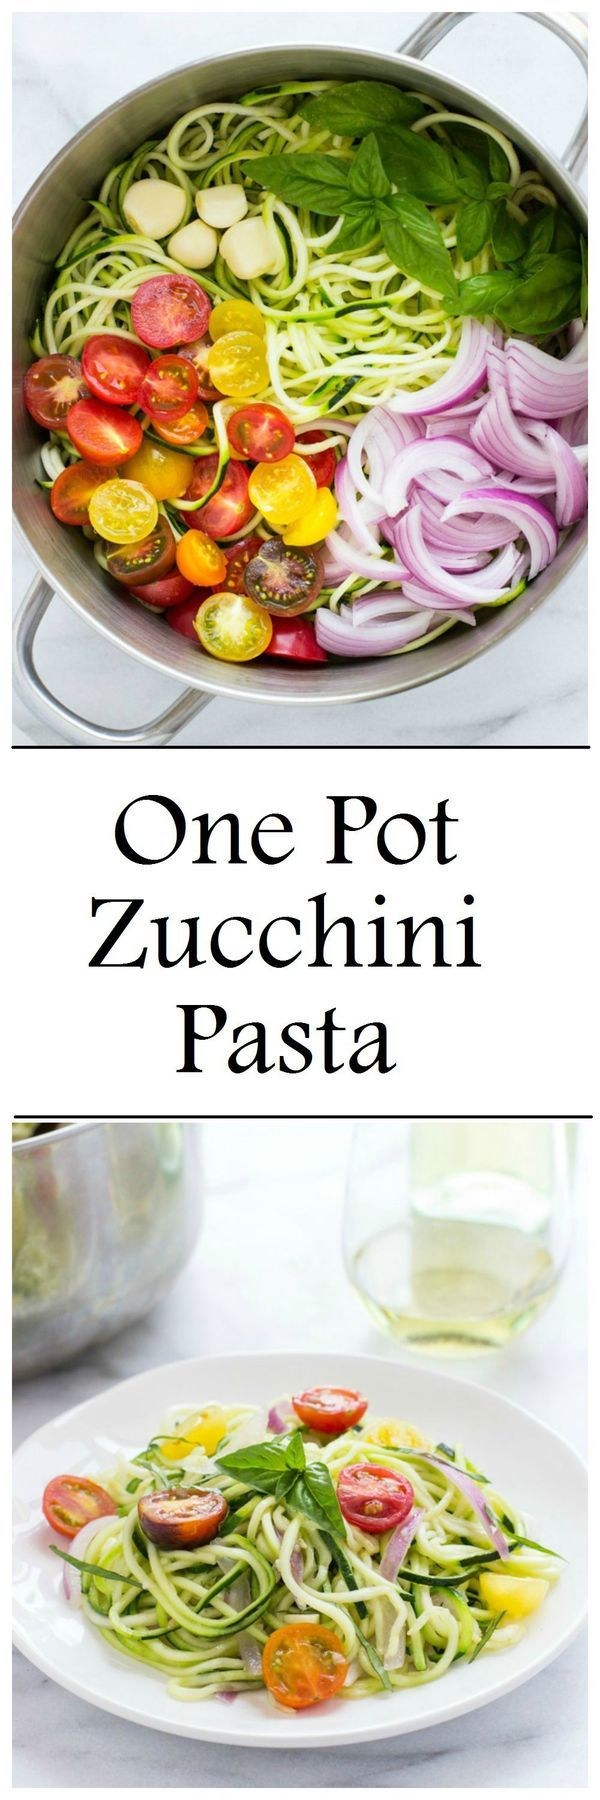 less is One serving code calories  in together  paleo      Zucchini one than Pasta     october minutes under promo         glutenfree Pot  grainfree comes